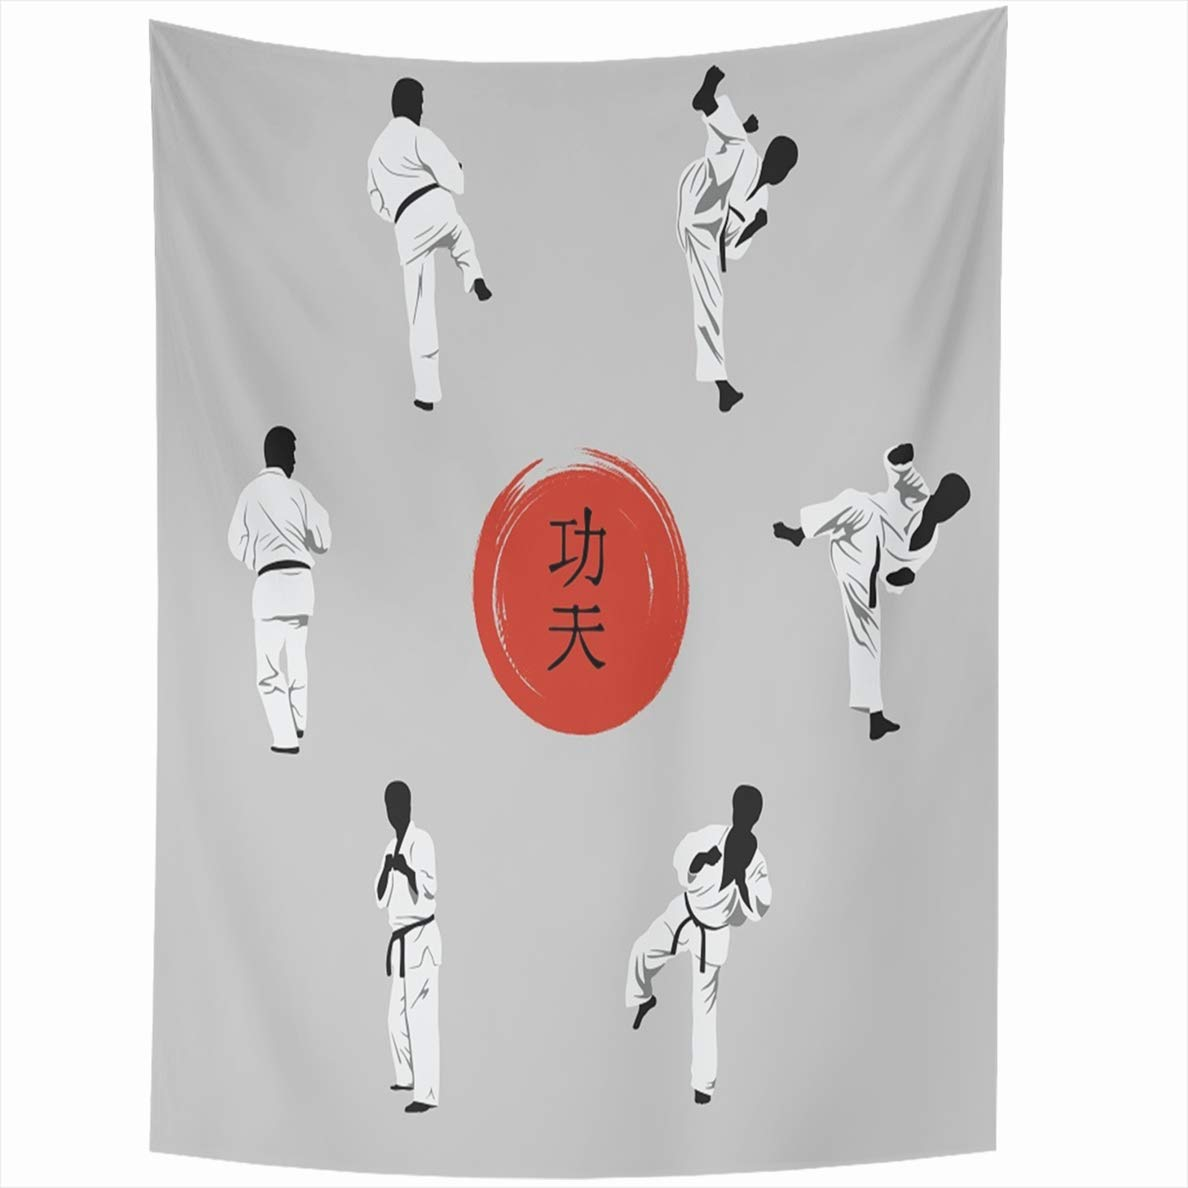 Ahawoso Tapestry 60x80 Inches Group Showing Kung Fu Watercolor Hieroglyph On Red is Karate Wall Hanging Home Decor Tapestries for Living Room Bedroom Dorm by Ahawoso